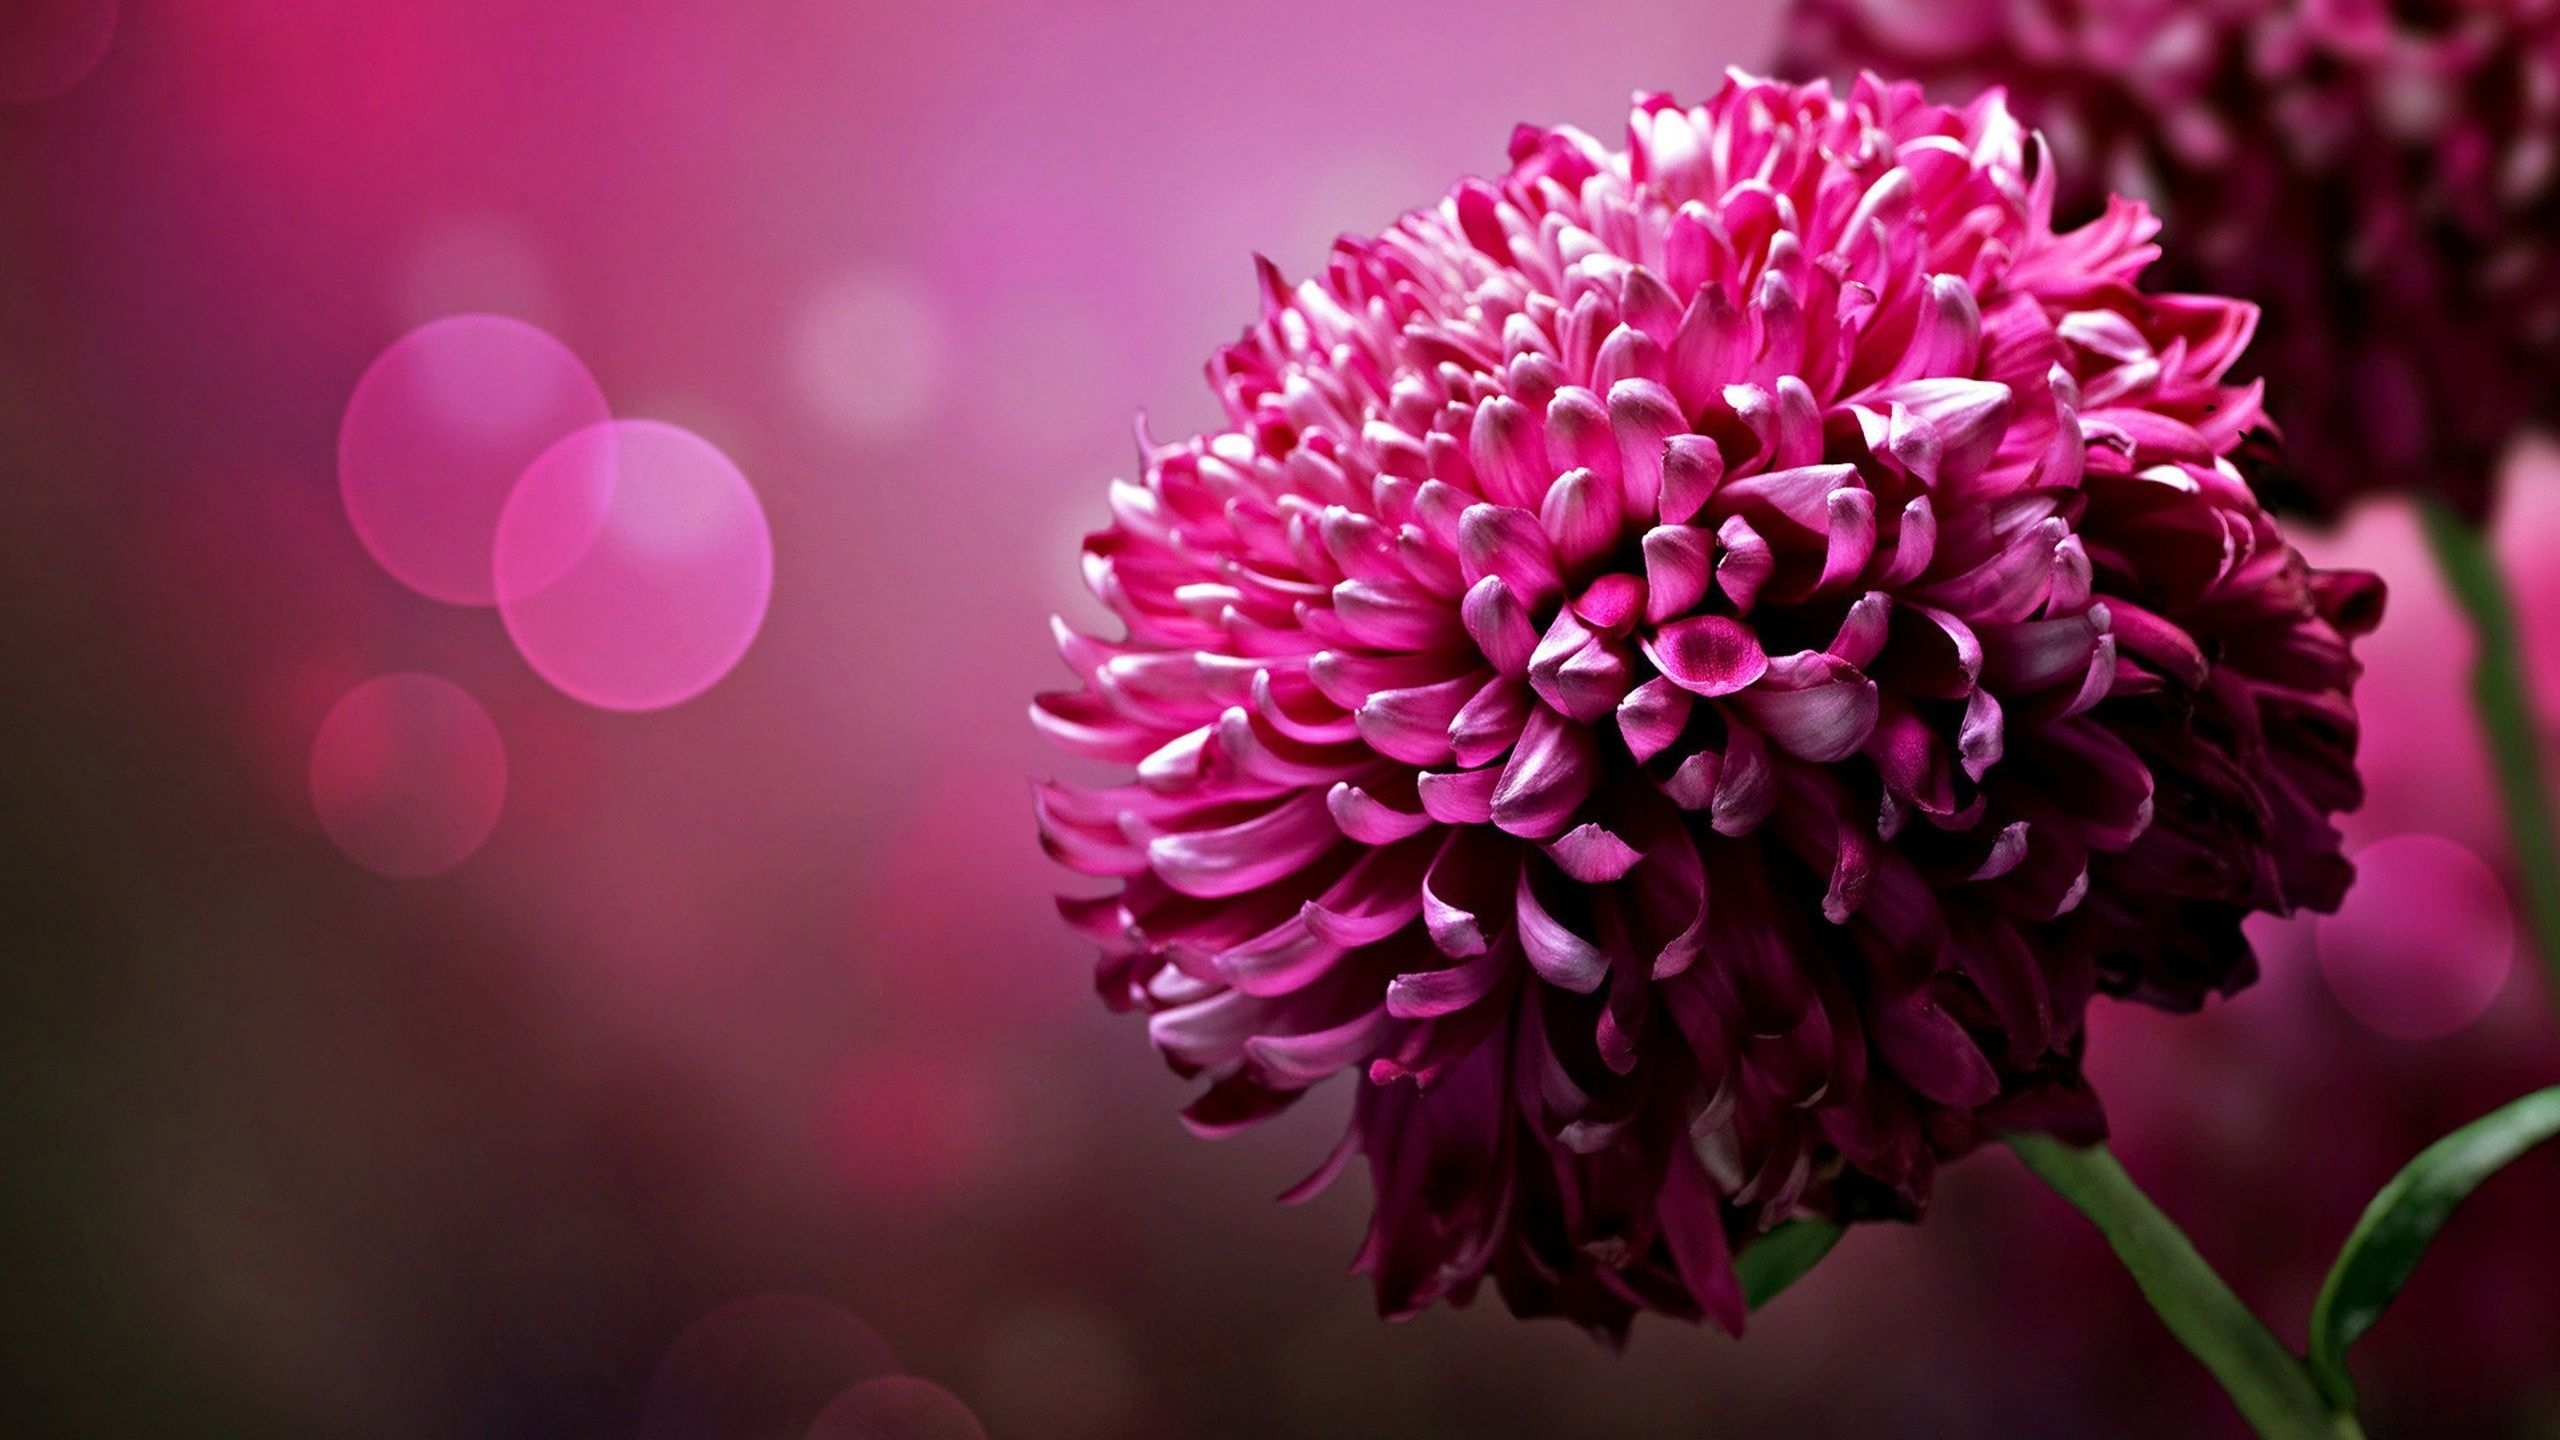 flower wallpapers pink high quality resolution | natures wallpapers